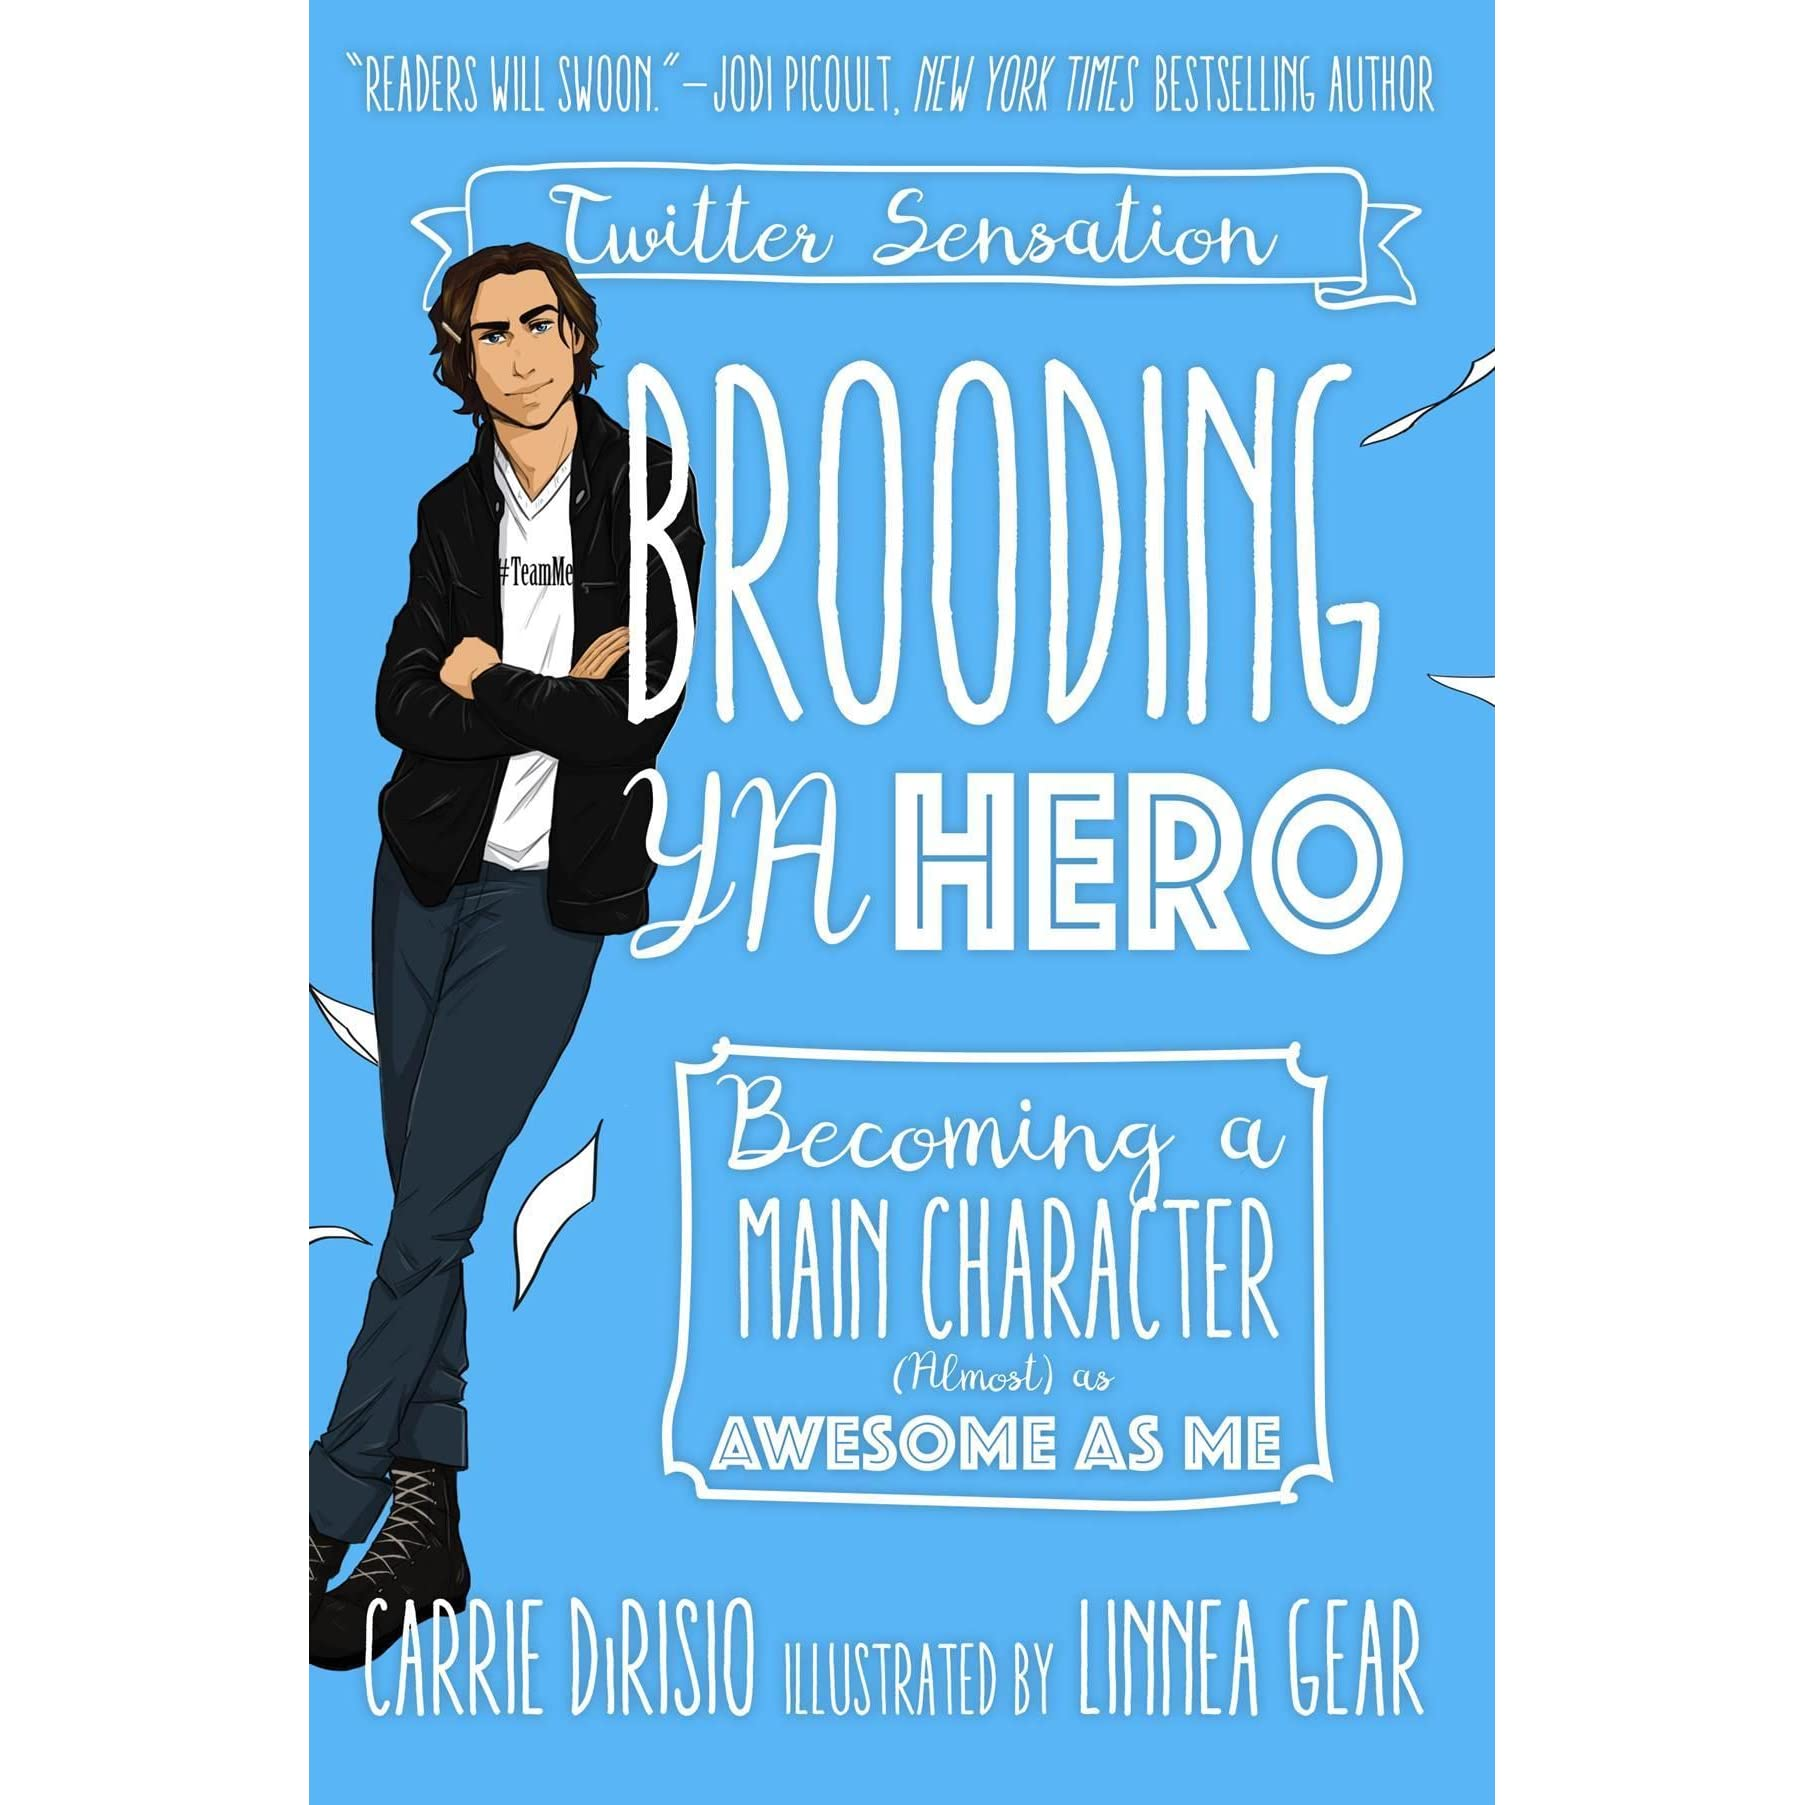 Como Descargar Libros En Goodreads Brooding Ya Hero Becoming A Main Character Almost As Awesome As